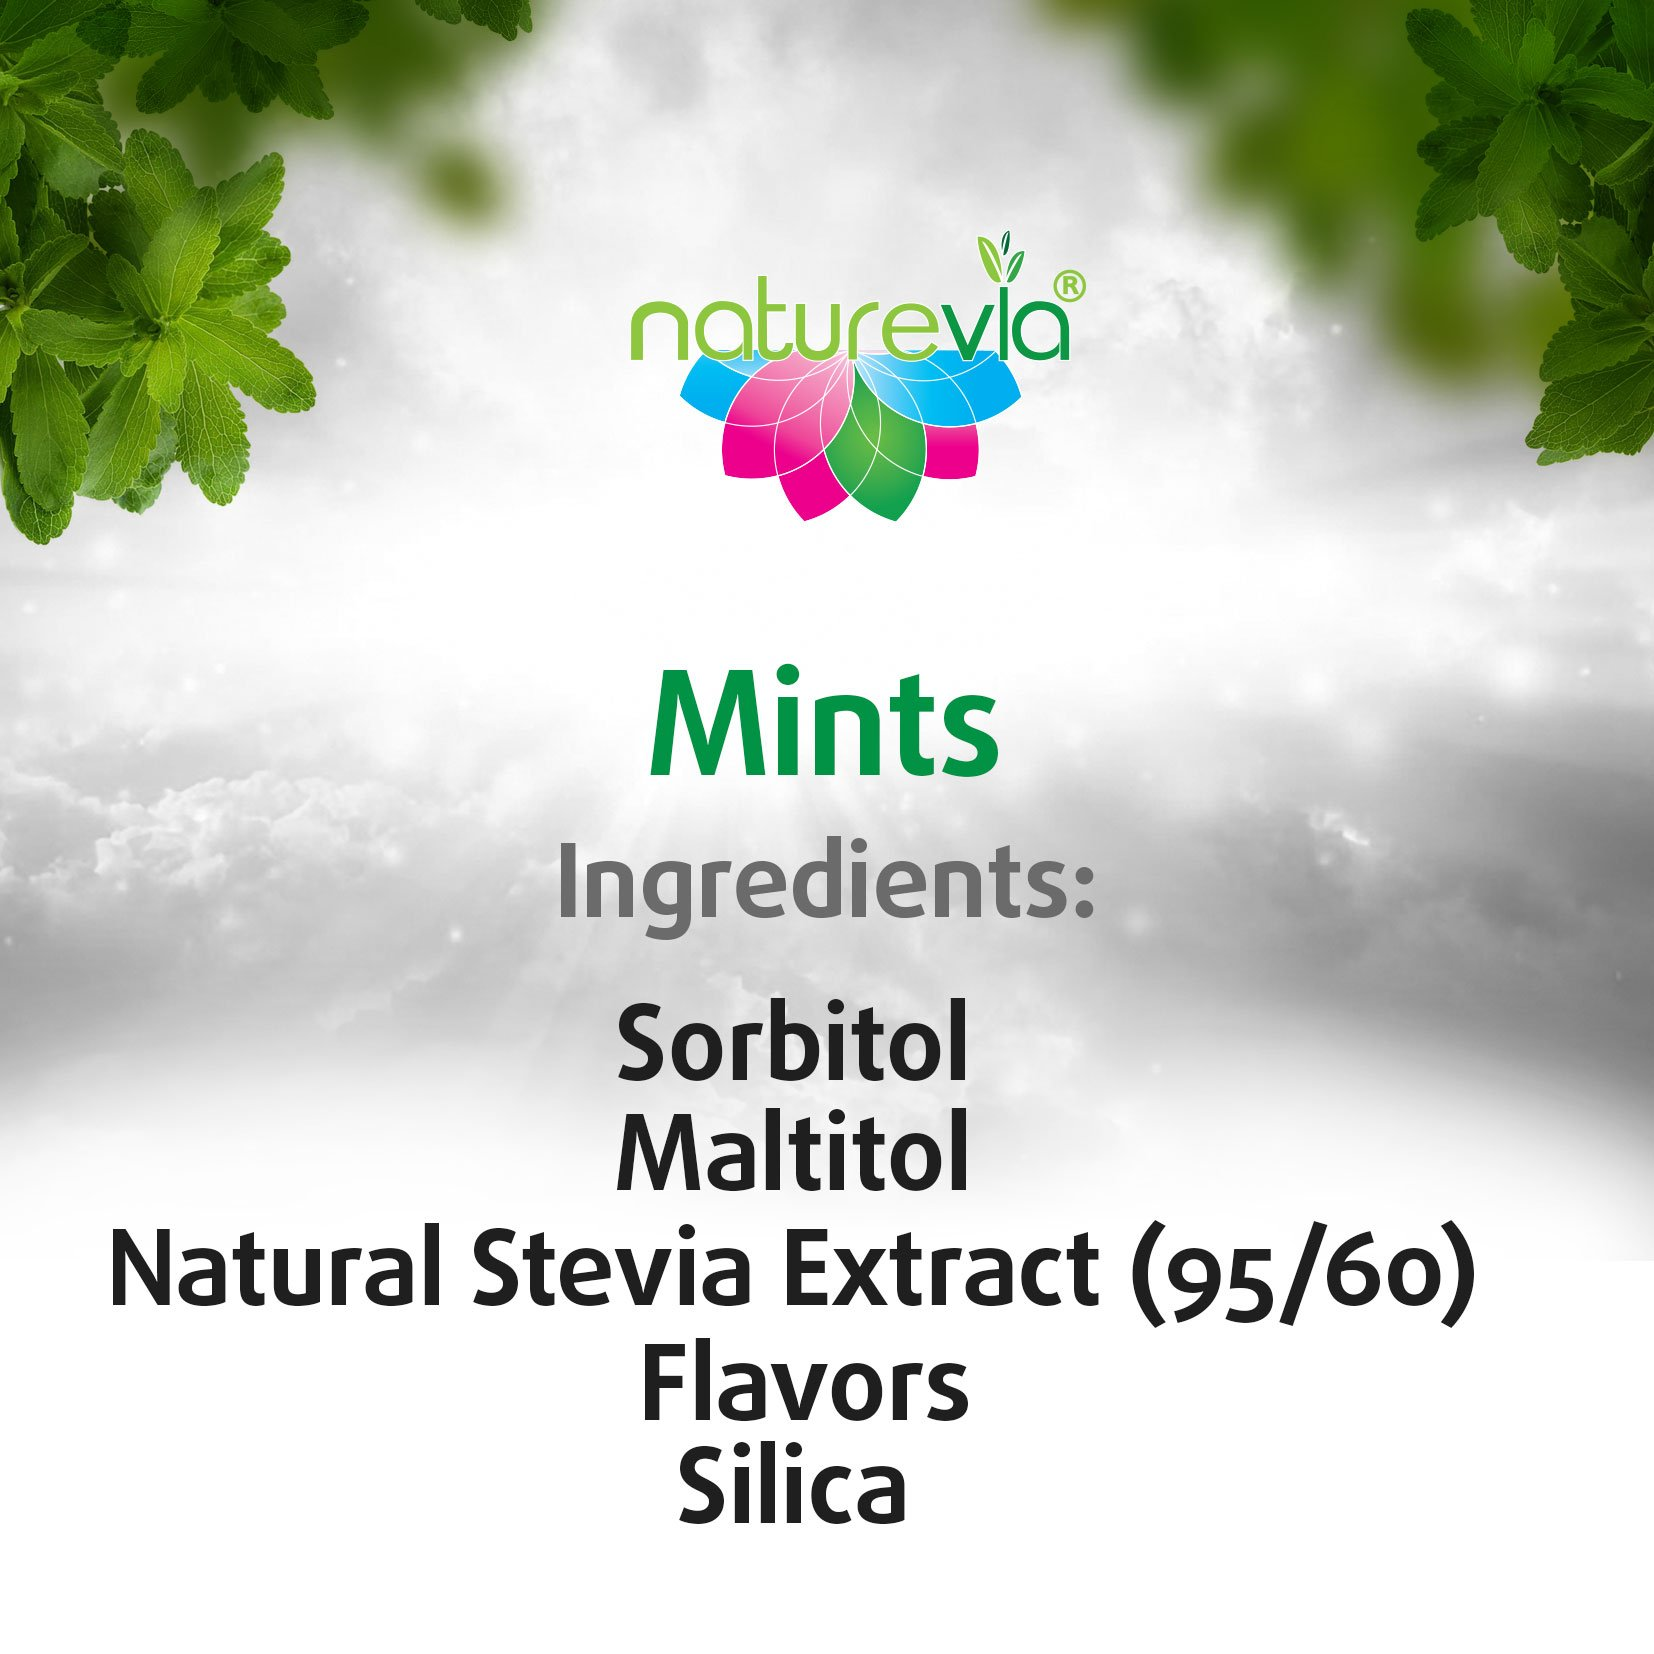 Sugar-Free Mints - Cinnamon Flavor (12 PACK-100 tabs 18 g): Mints Naturally Sweetened with Stevia, Free of: Sugar, Carbs, Calories, Glycemic Index, Aspartame ; Dentist Recommended by Naturevia (Image #6)